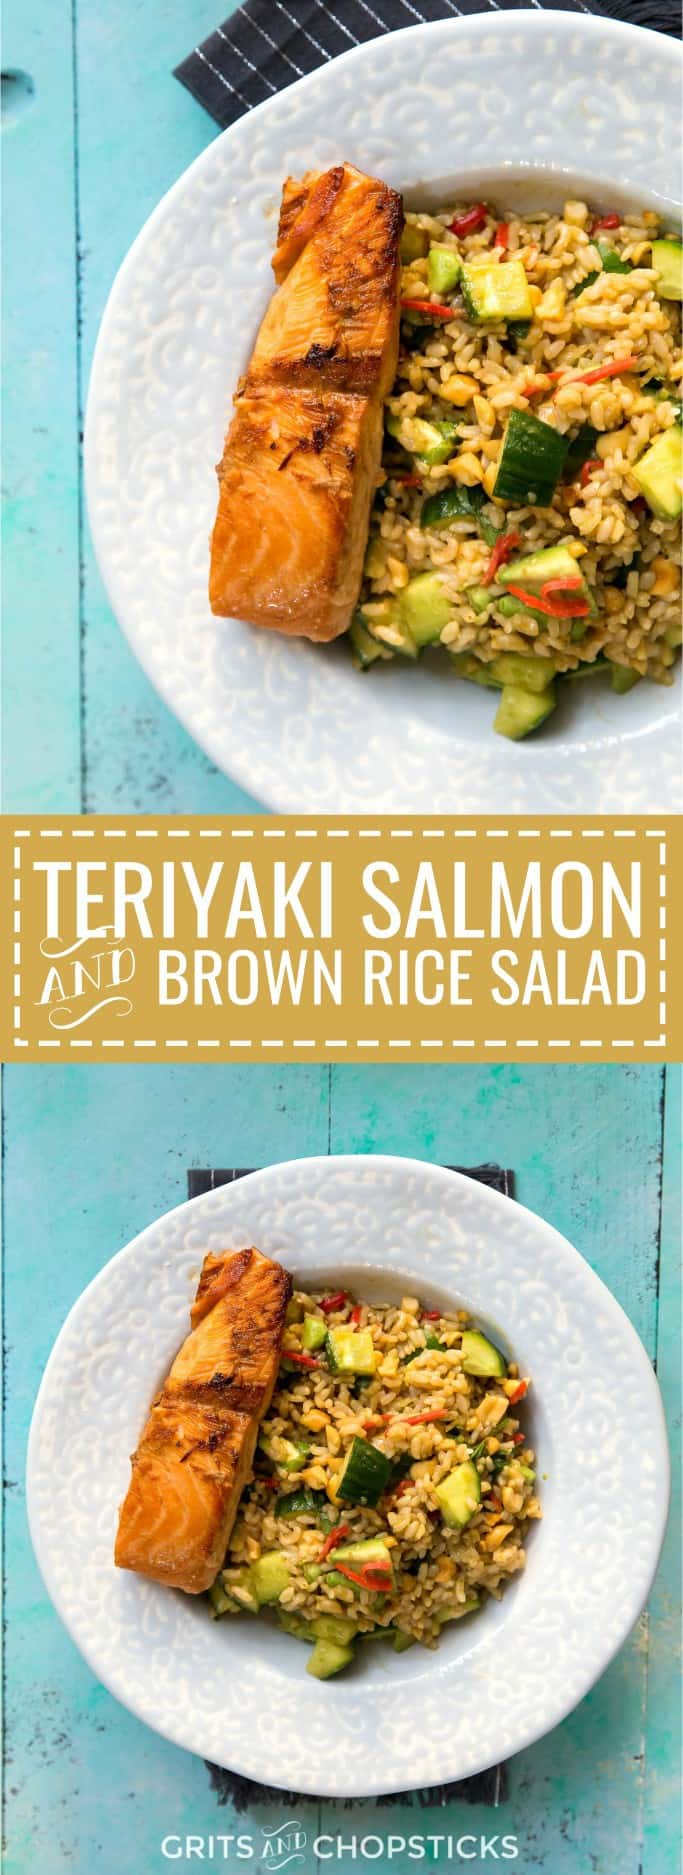 This teriyaki salmon and brown rice salad with cucumbers, avocados, peanuts and pickles is an easy Asian recipe for a weeknight meal